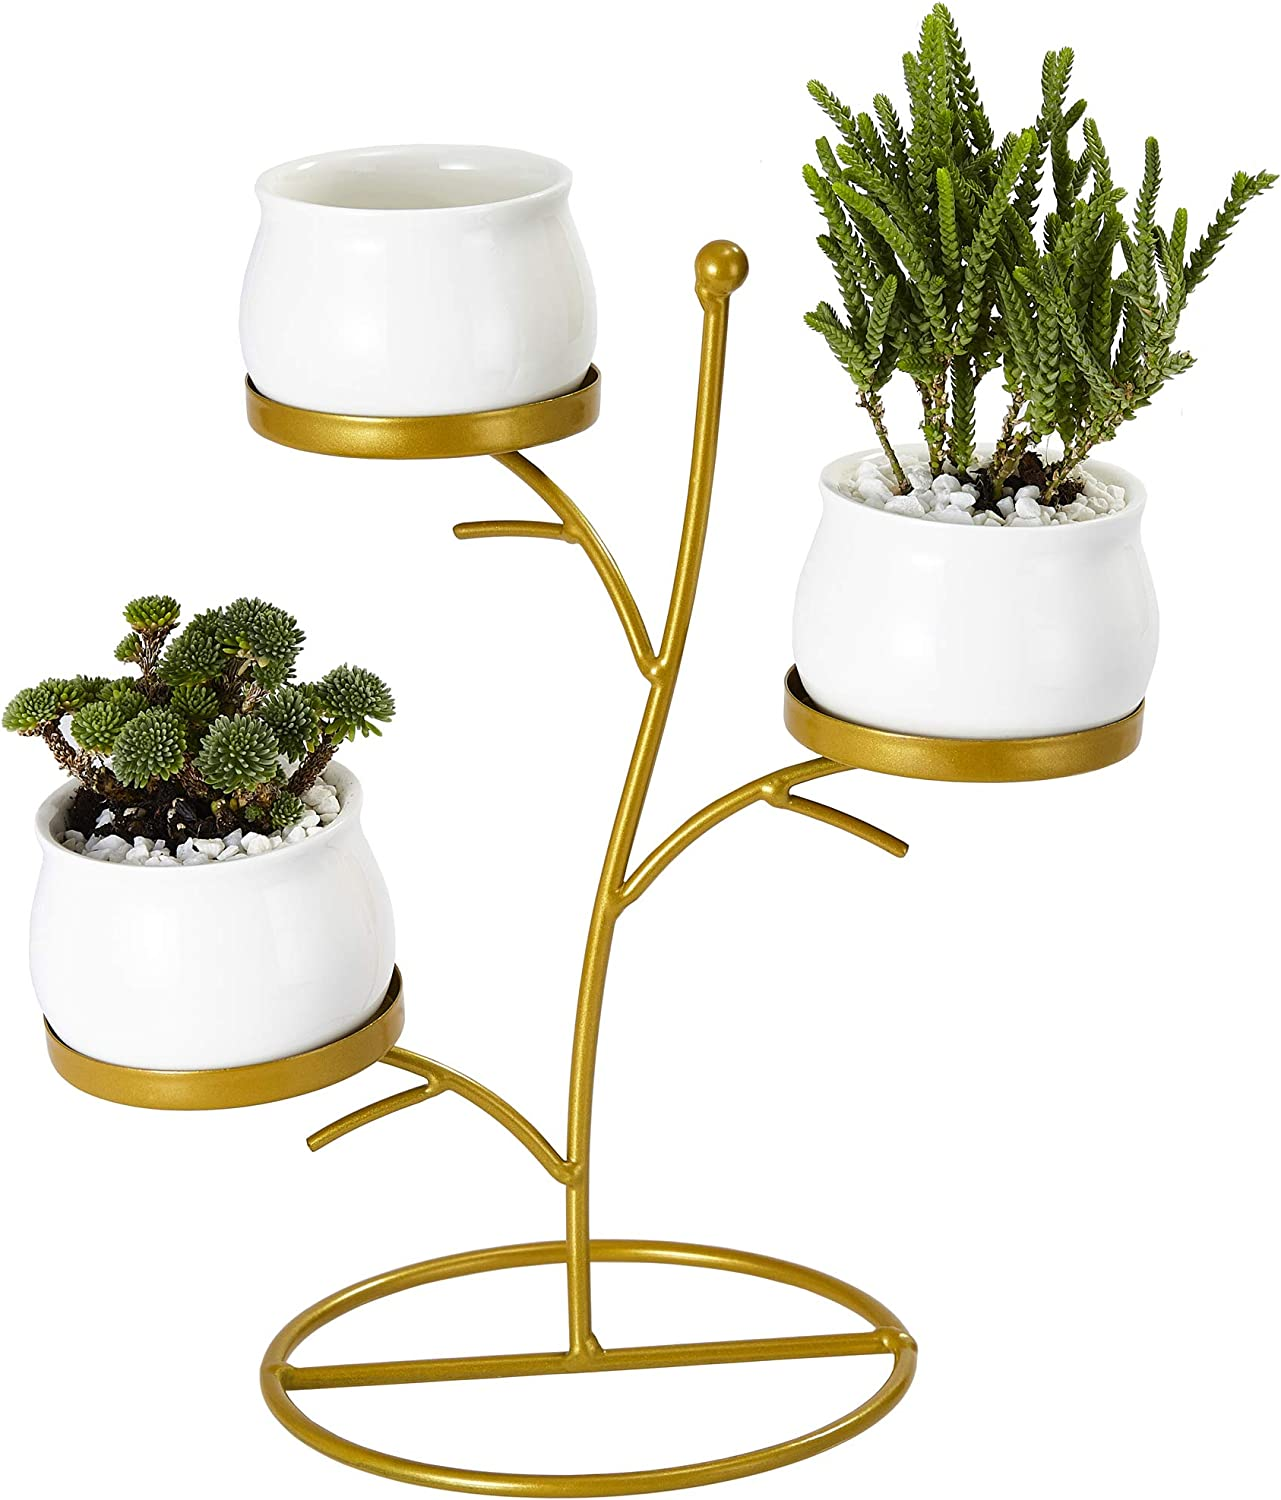 Flowerplus Small Succulent Planter Pots, 3 Pack 2.75 Inch White Ceramic Round Decorative Cactus Flower Plant Pot With Tree Tier Metal Stand for Indoor Outdoor Home Office Garden Kitchen D cor 3PP025